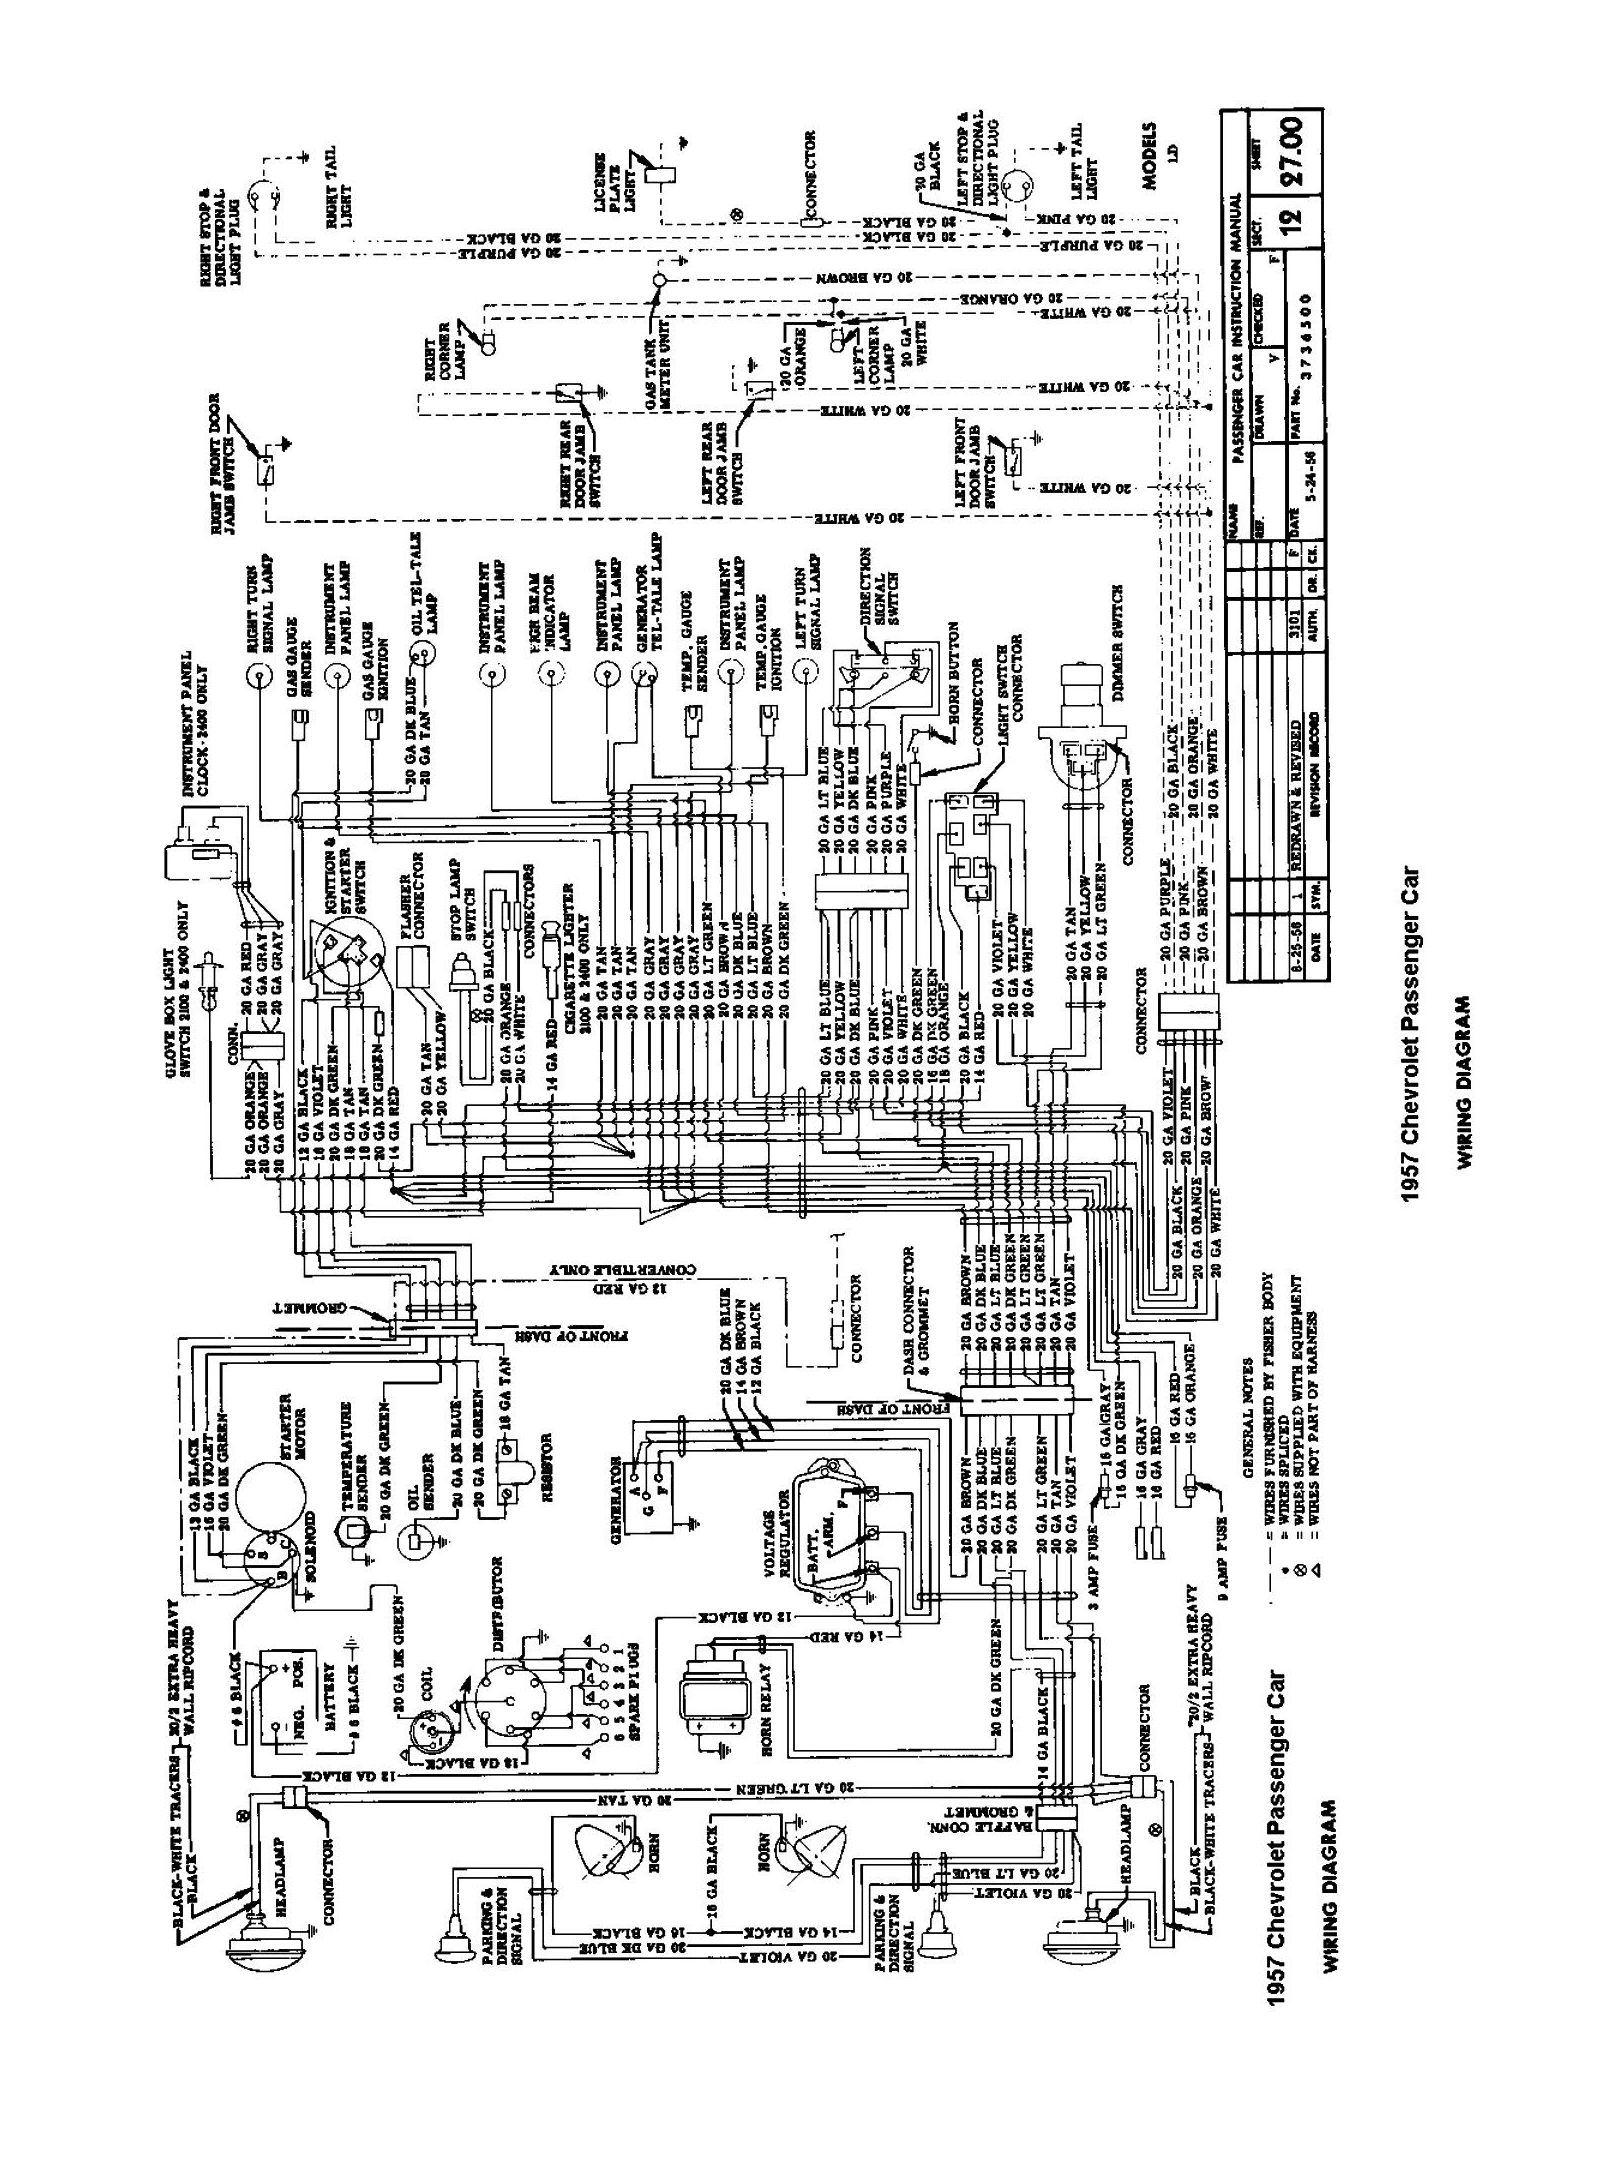 1957 Bel Air Dash Wiring Diagram